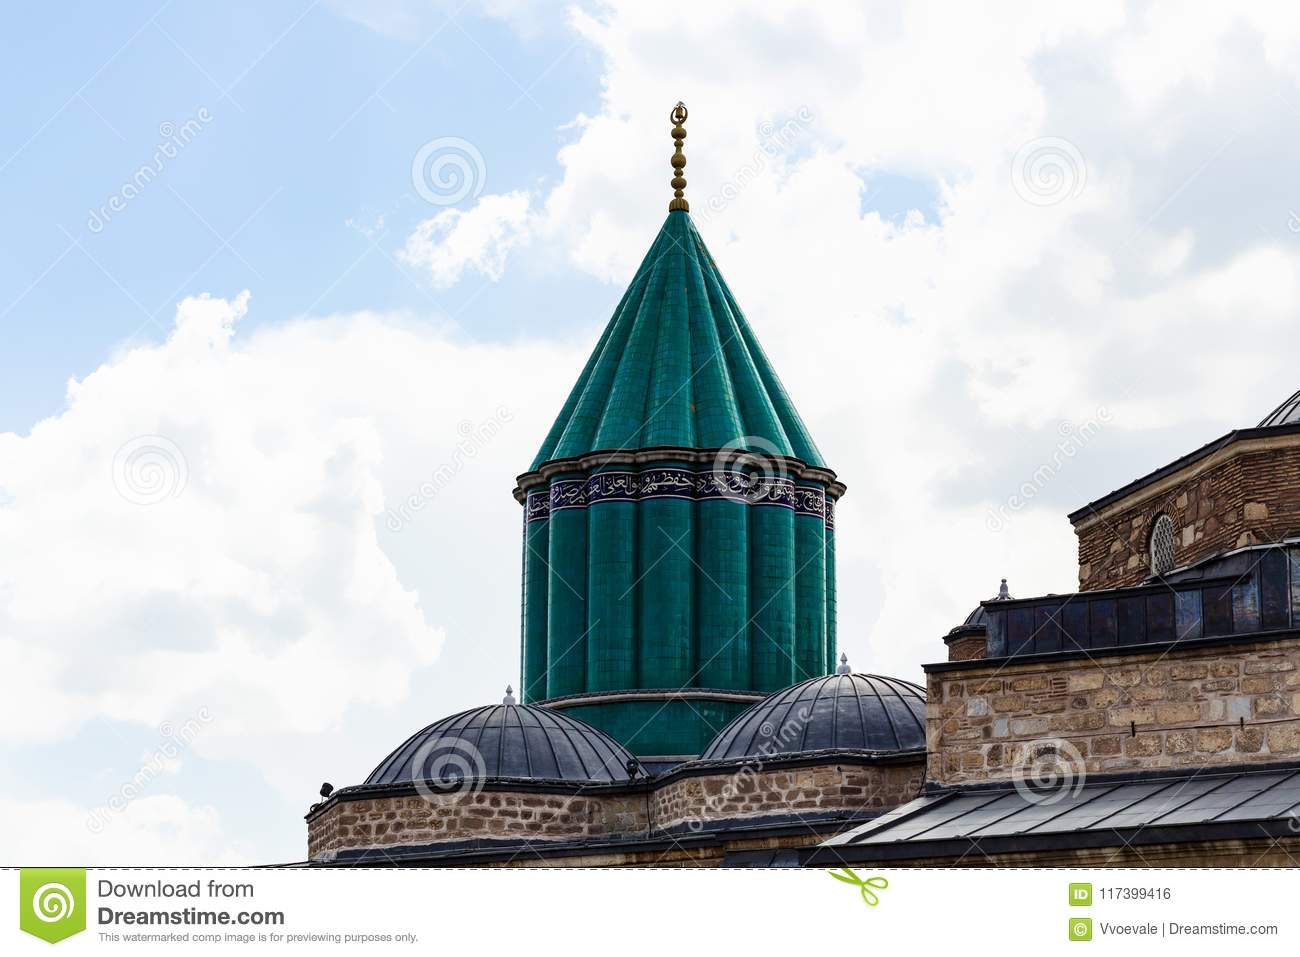 green dome and roof of Rumi Shrine in Konya city